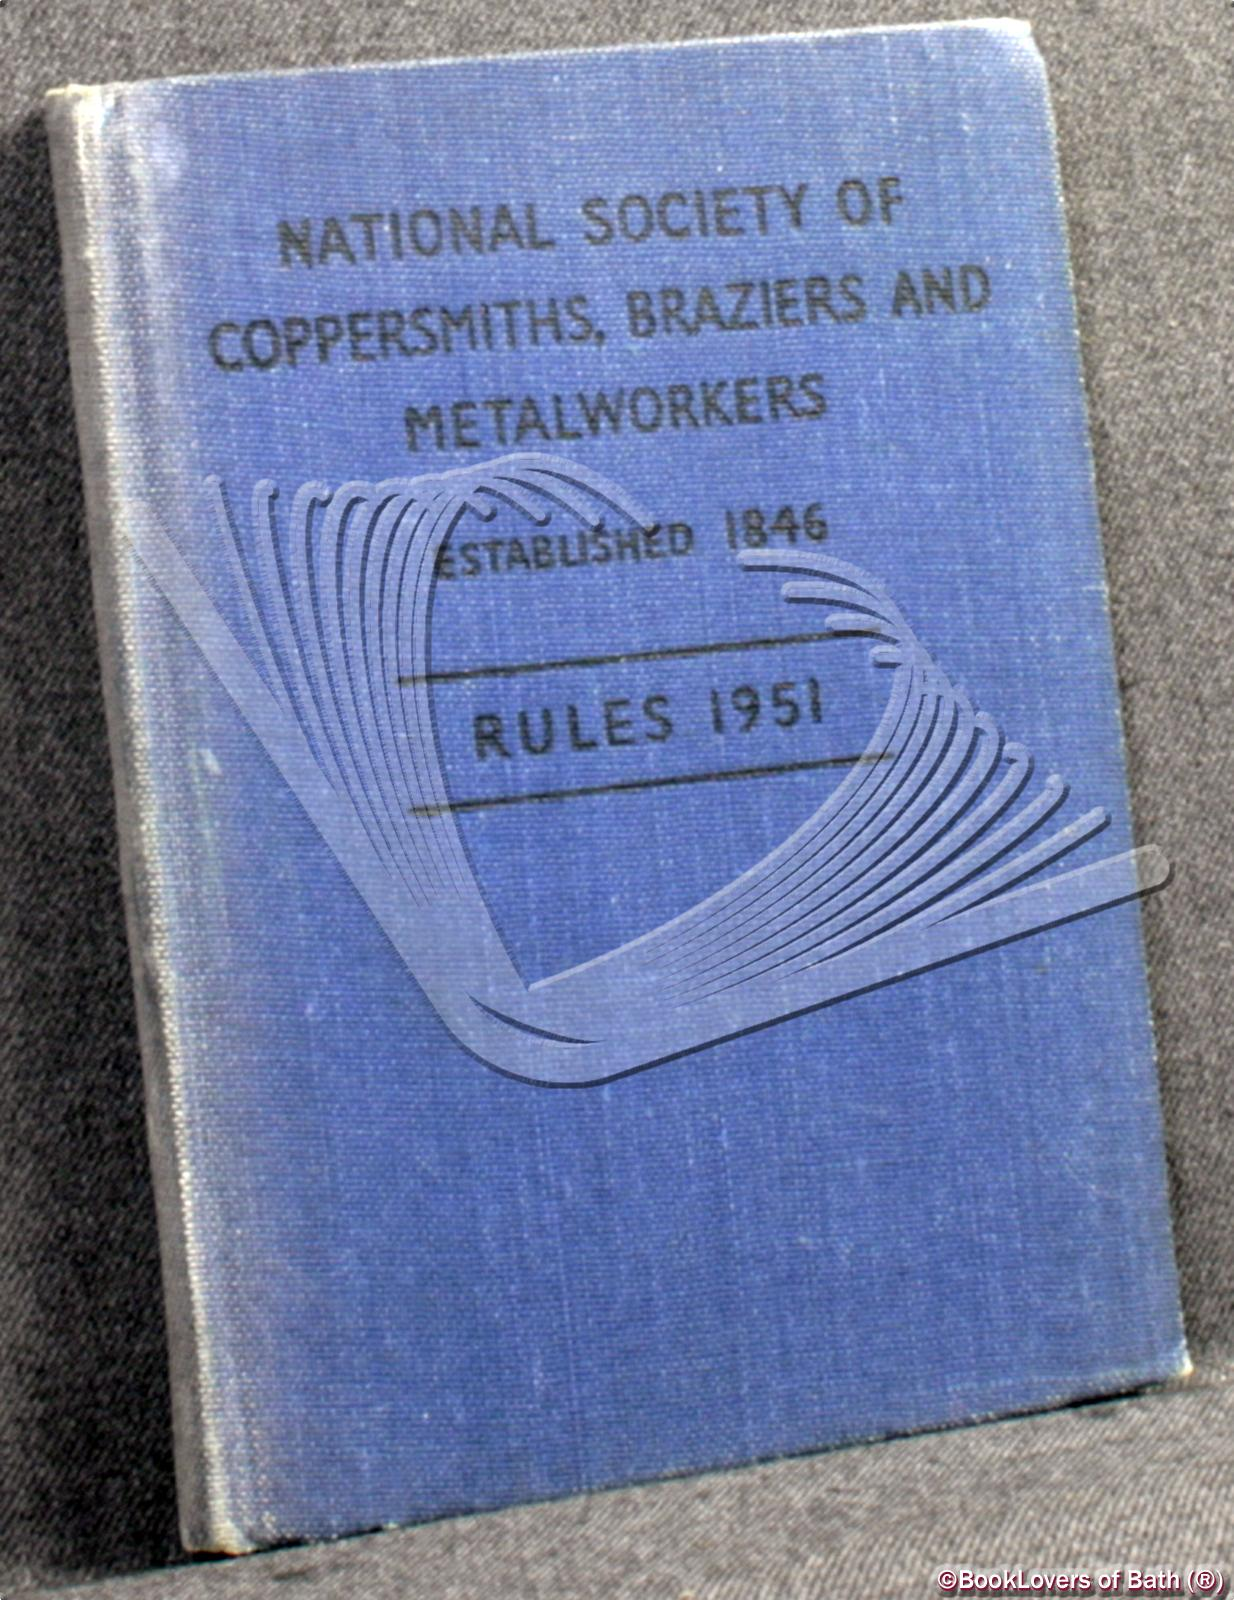 Rules of the National Society of Coppersmiths, Braziers, and Metalworkers - Anon.